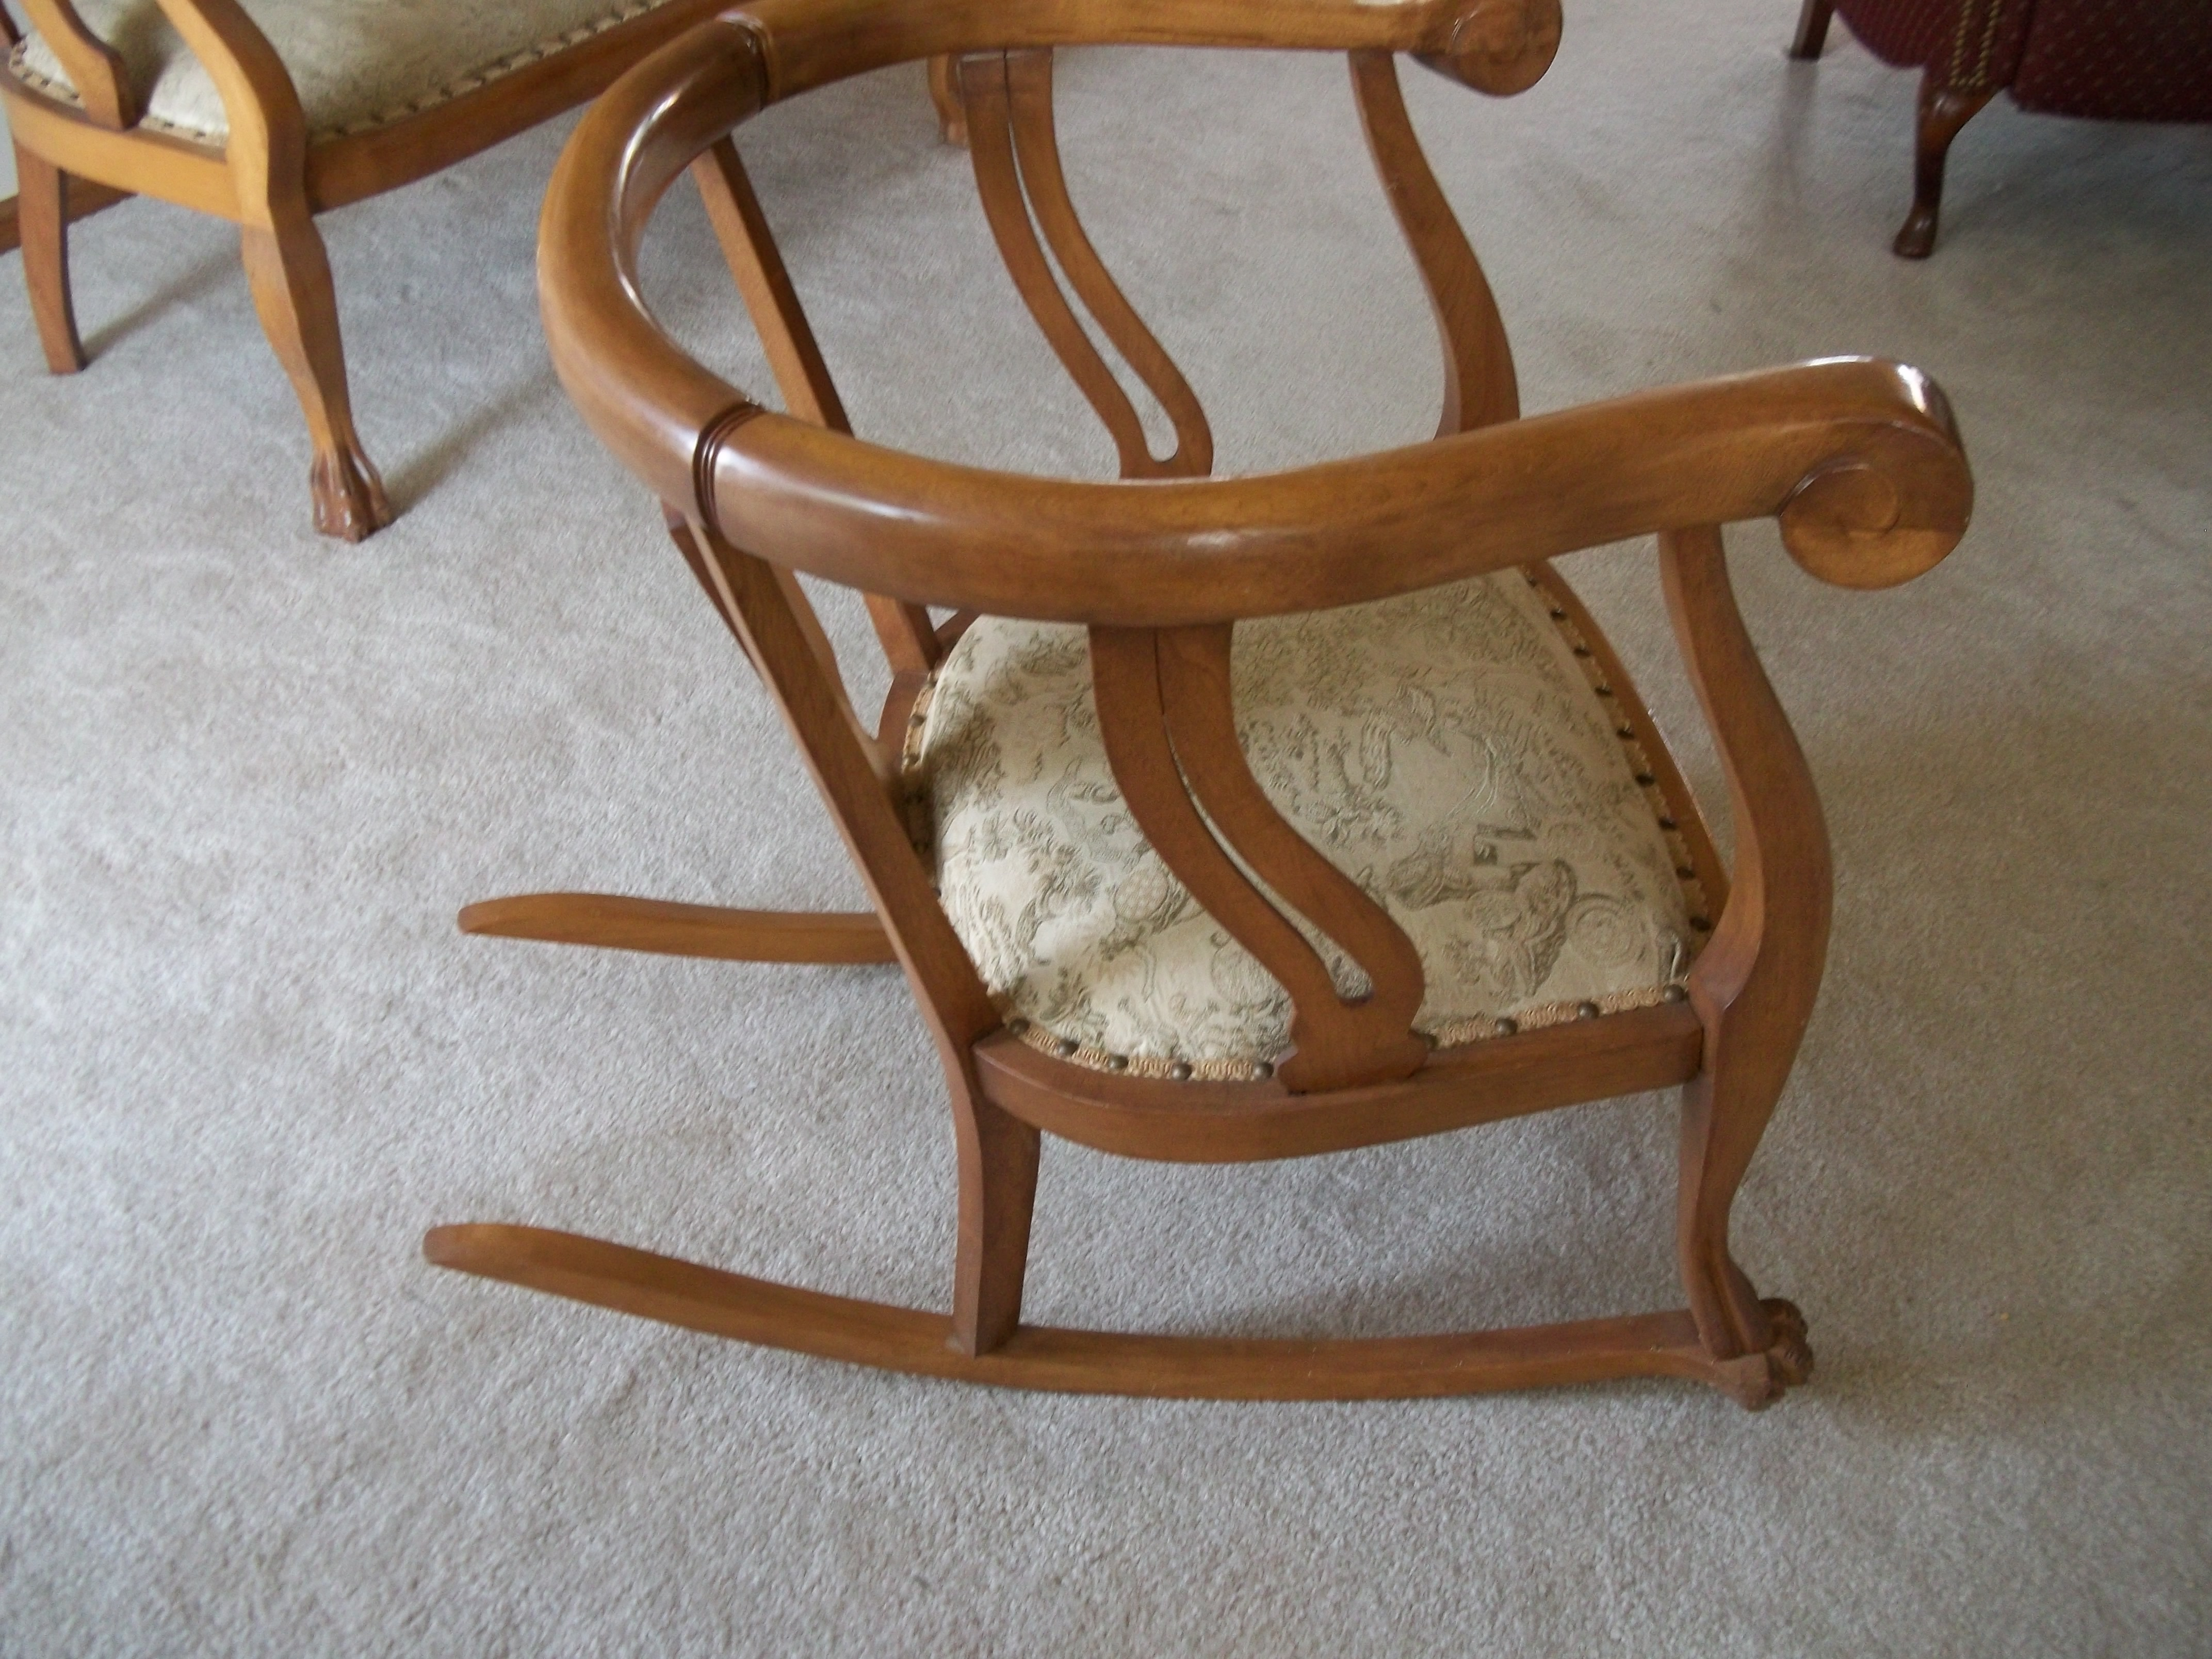 Antique oak rocking chair - This Beautiful Duo Is Just Waiting To Showcase Any Area You Choose The Pair Are In Excellent Condition And Sturdy You Ll Get Lots Of Compliments On This